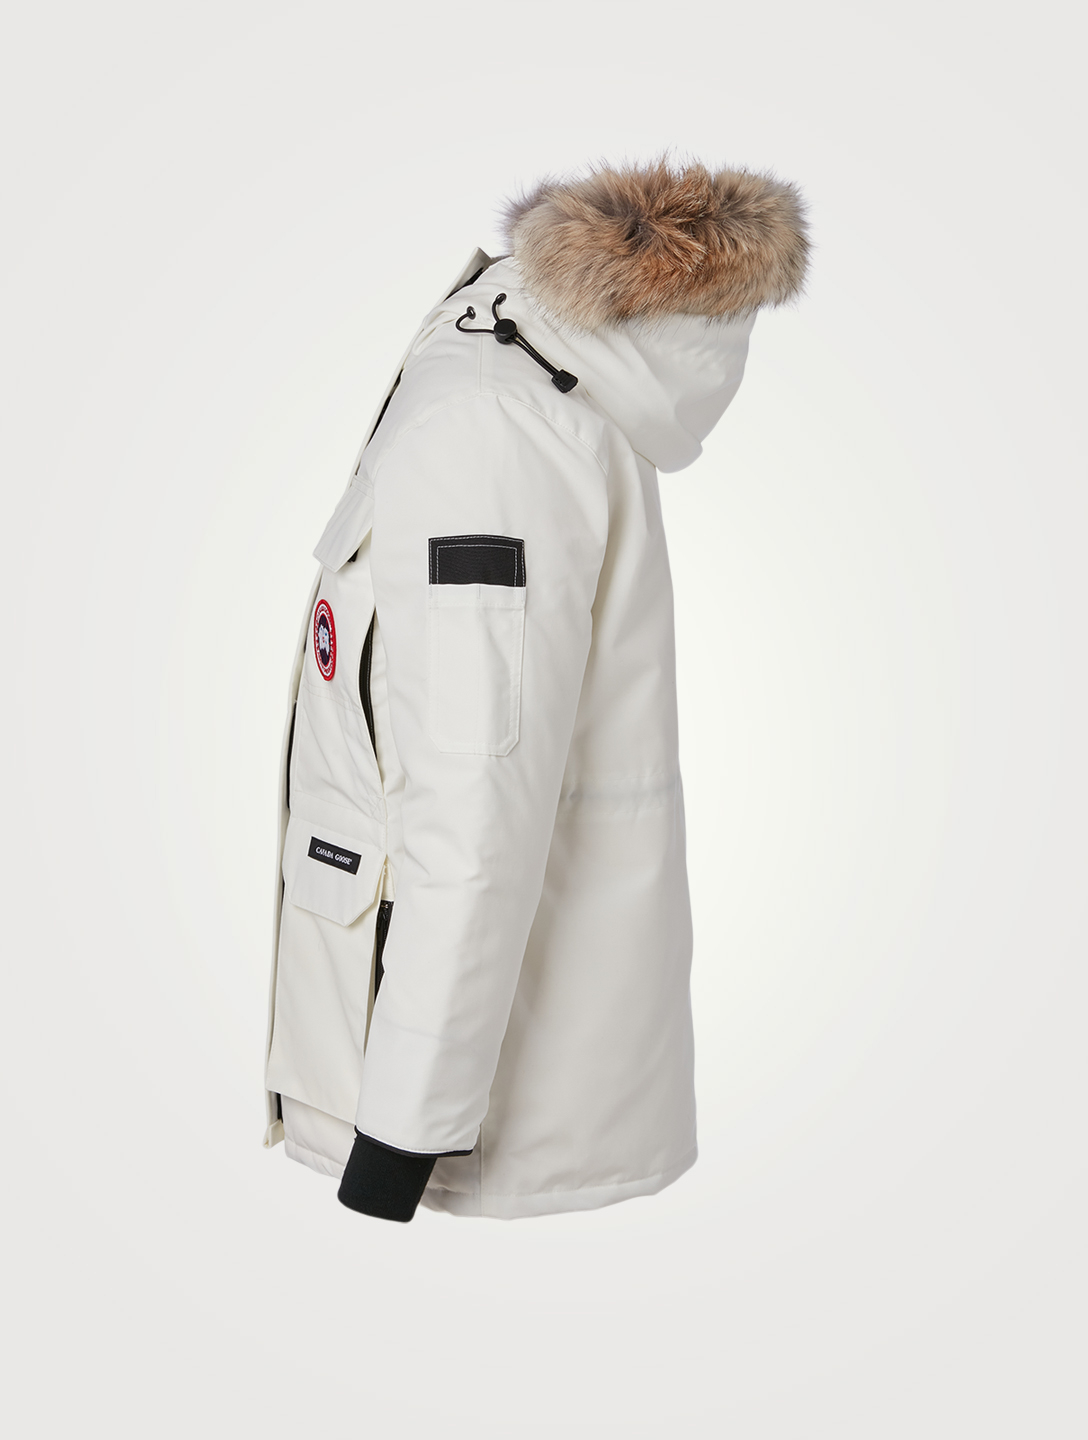 CANADA GOOSE Expedition Down Parka With Fur - Fusion Fit Women's White